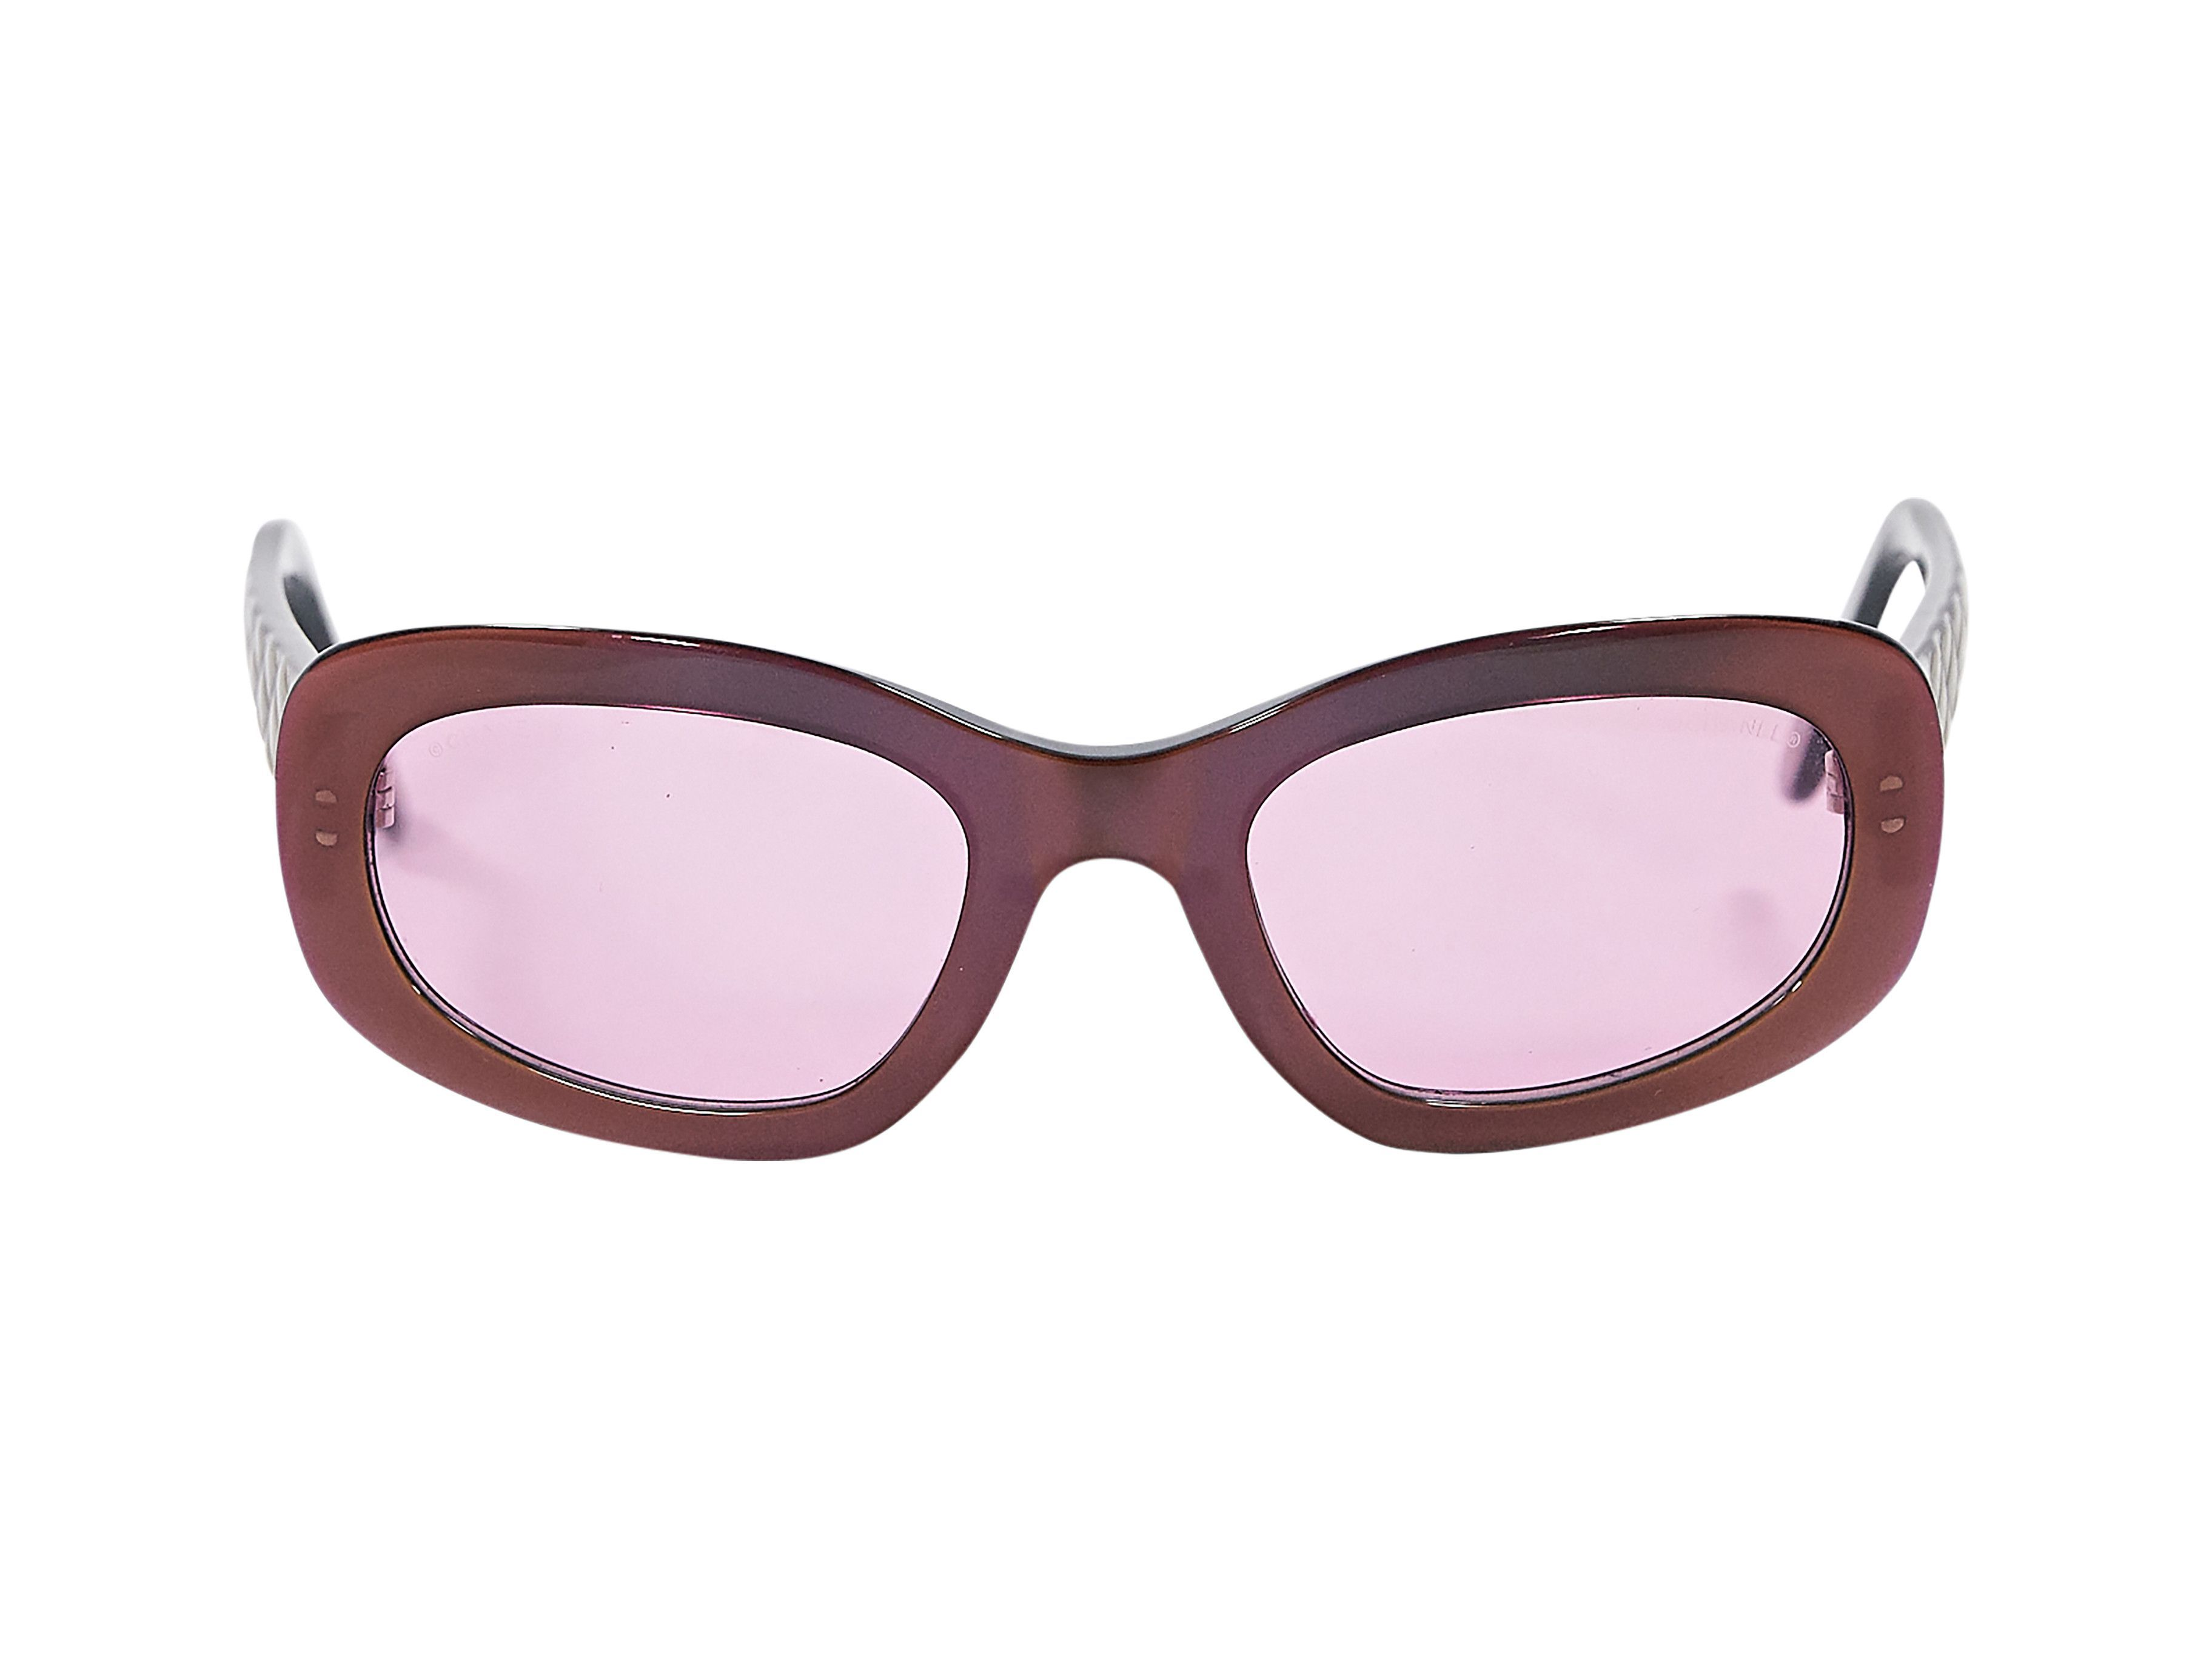 5c98413288 Burgundy Chanel Quilted Sunglasses